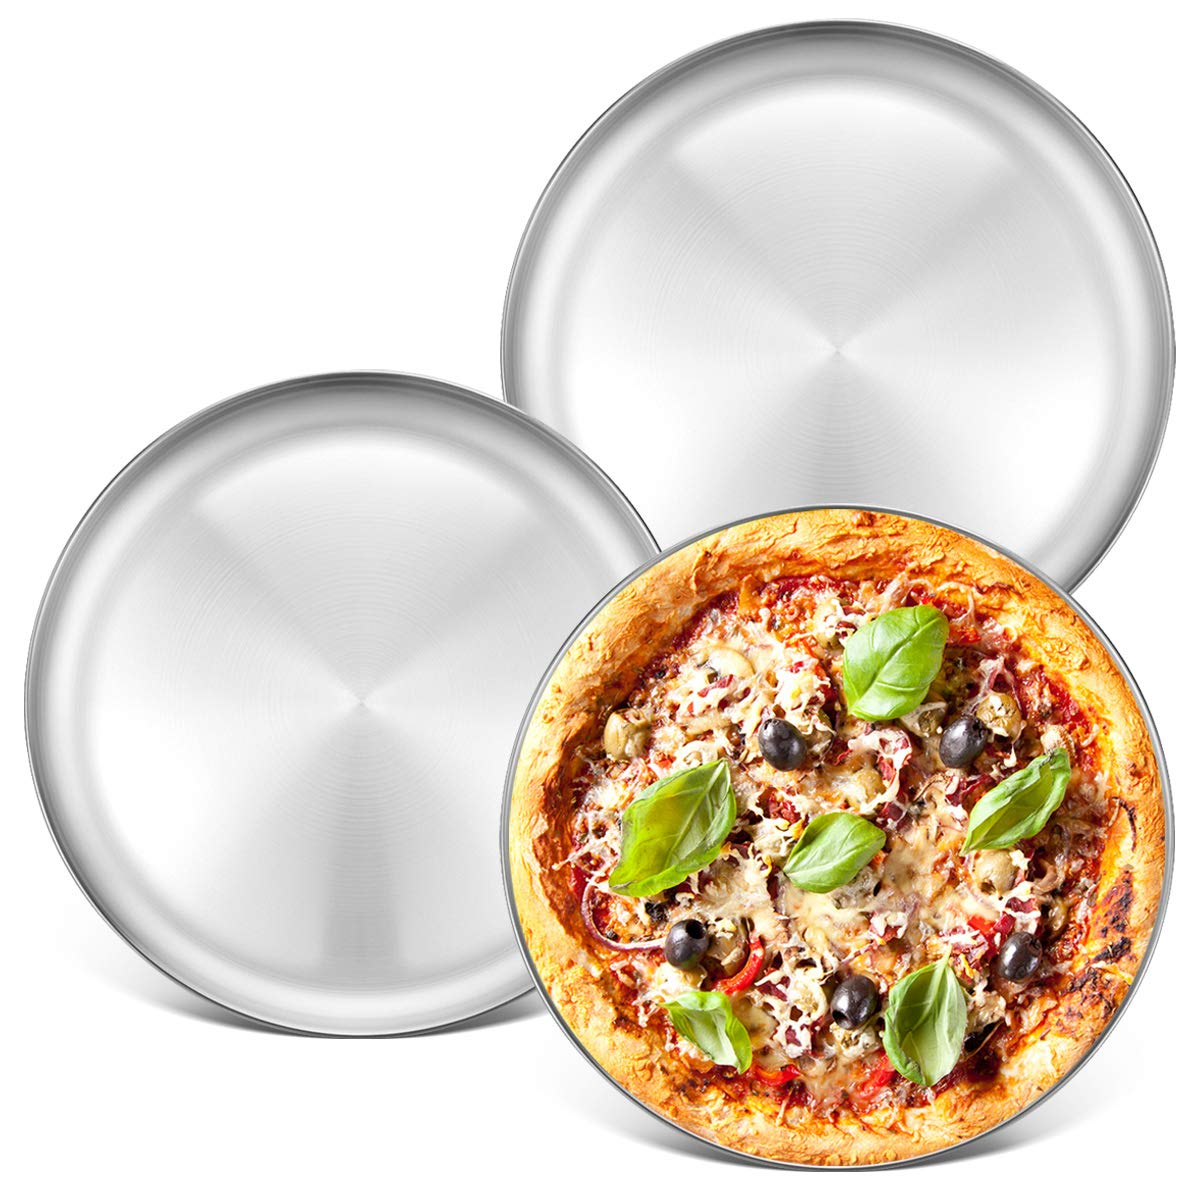 Stainless Steel Pizza Pan 13.39 inch - Deedro Round Pizza Tray Pizza Baking Sheet, Nonstick Pizza Baking Pan Dishewsher Safe Pizza Serving Tray, 3 Pack